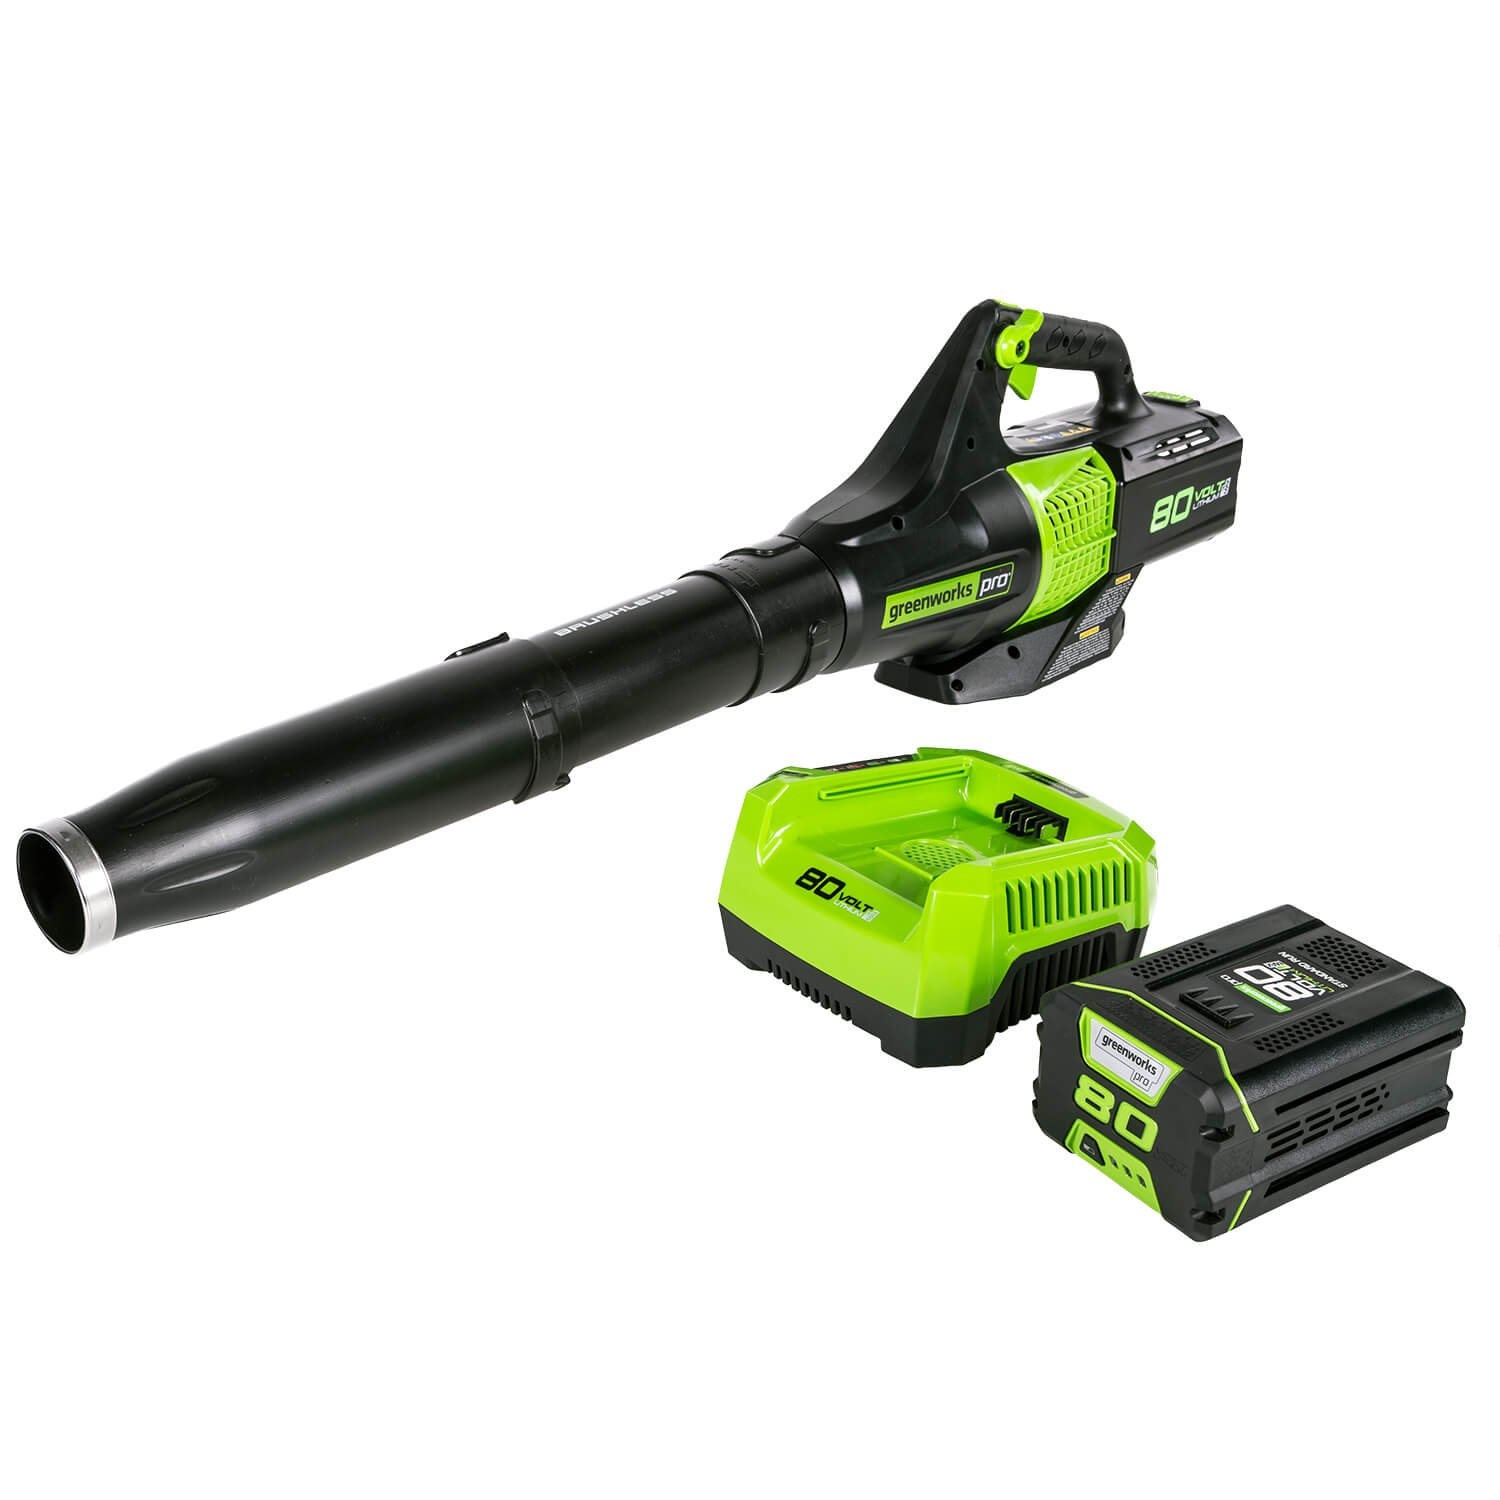 Greenworks PRO 80V 145 MPH - 580 CFM Cordless Jet Blower, 2.5 AH Battery Included BL80L2510 by Greenworks